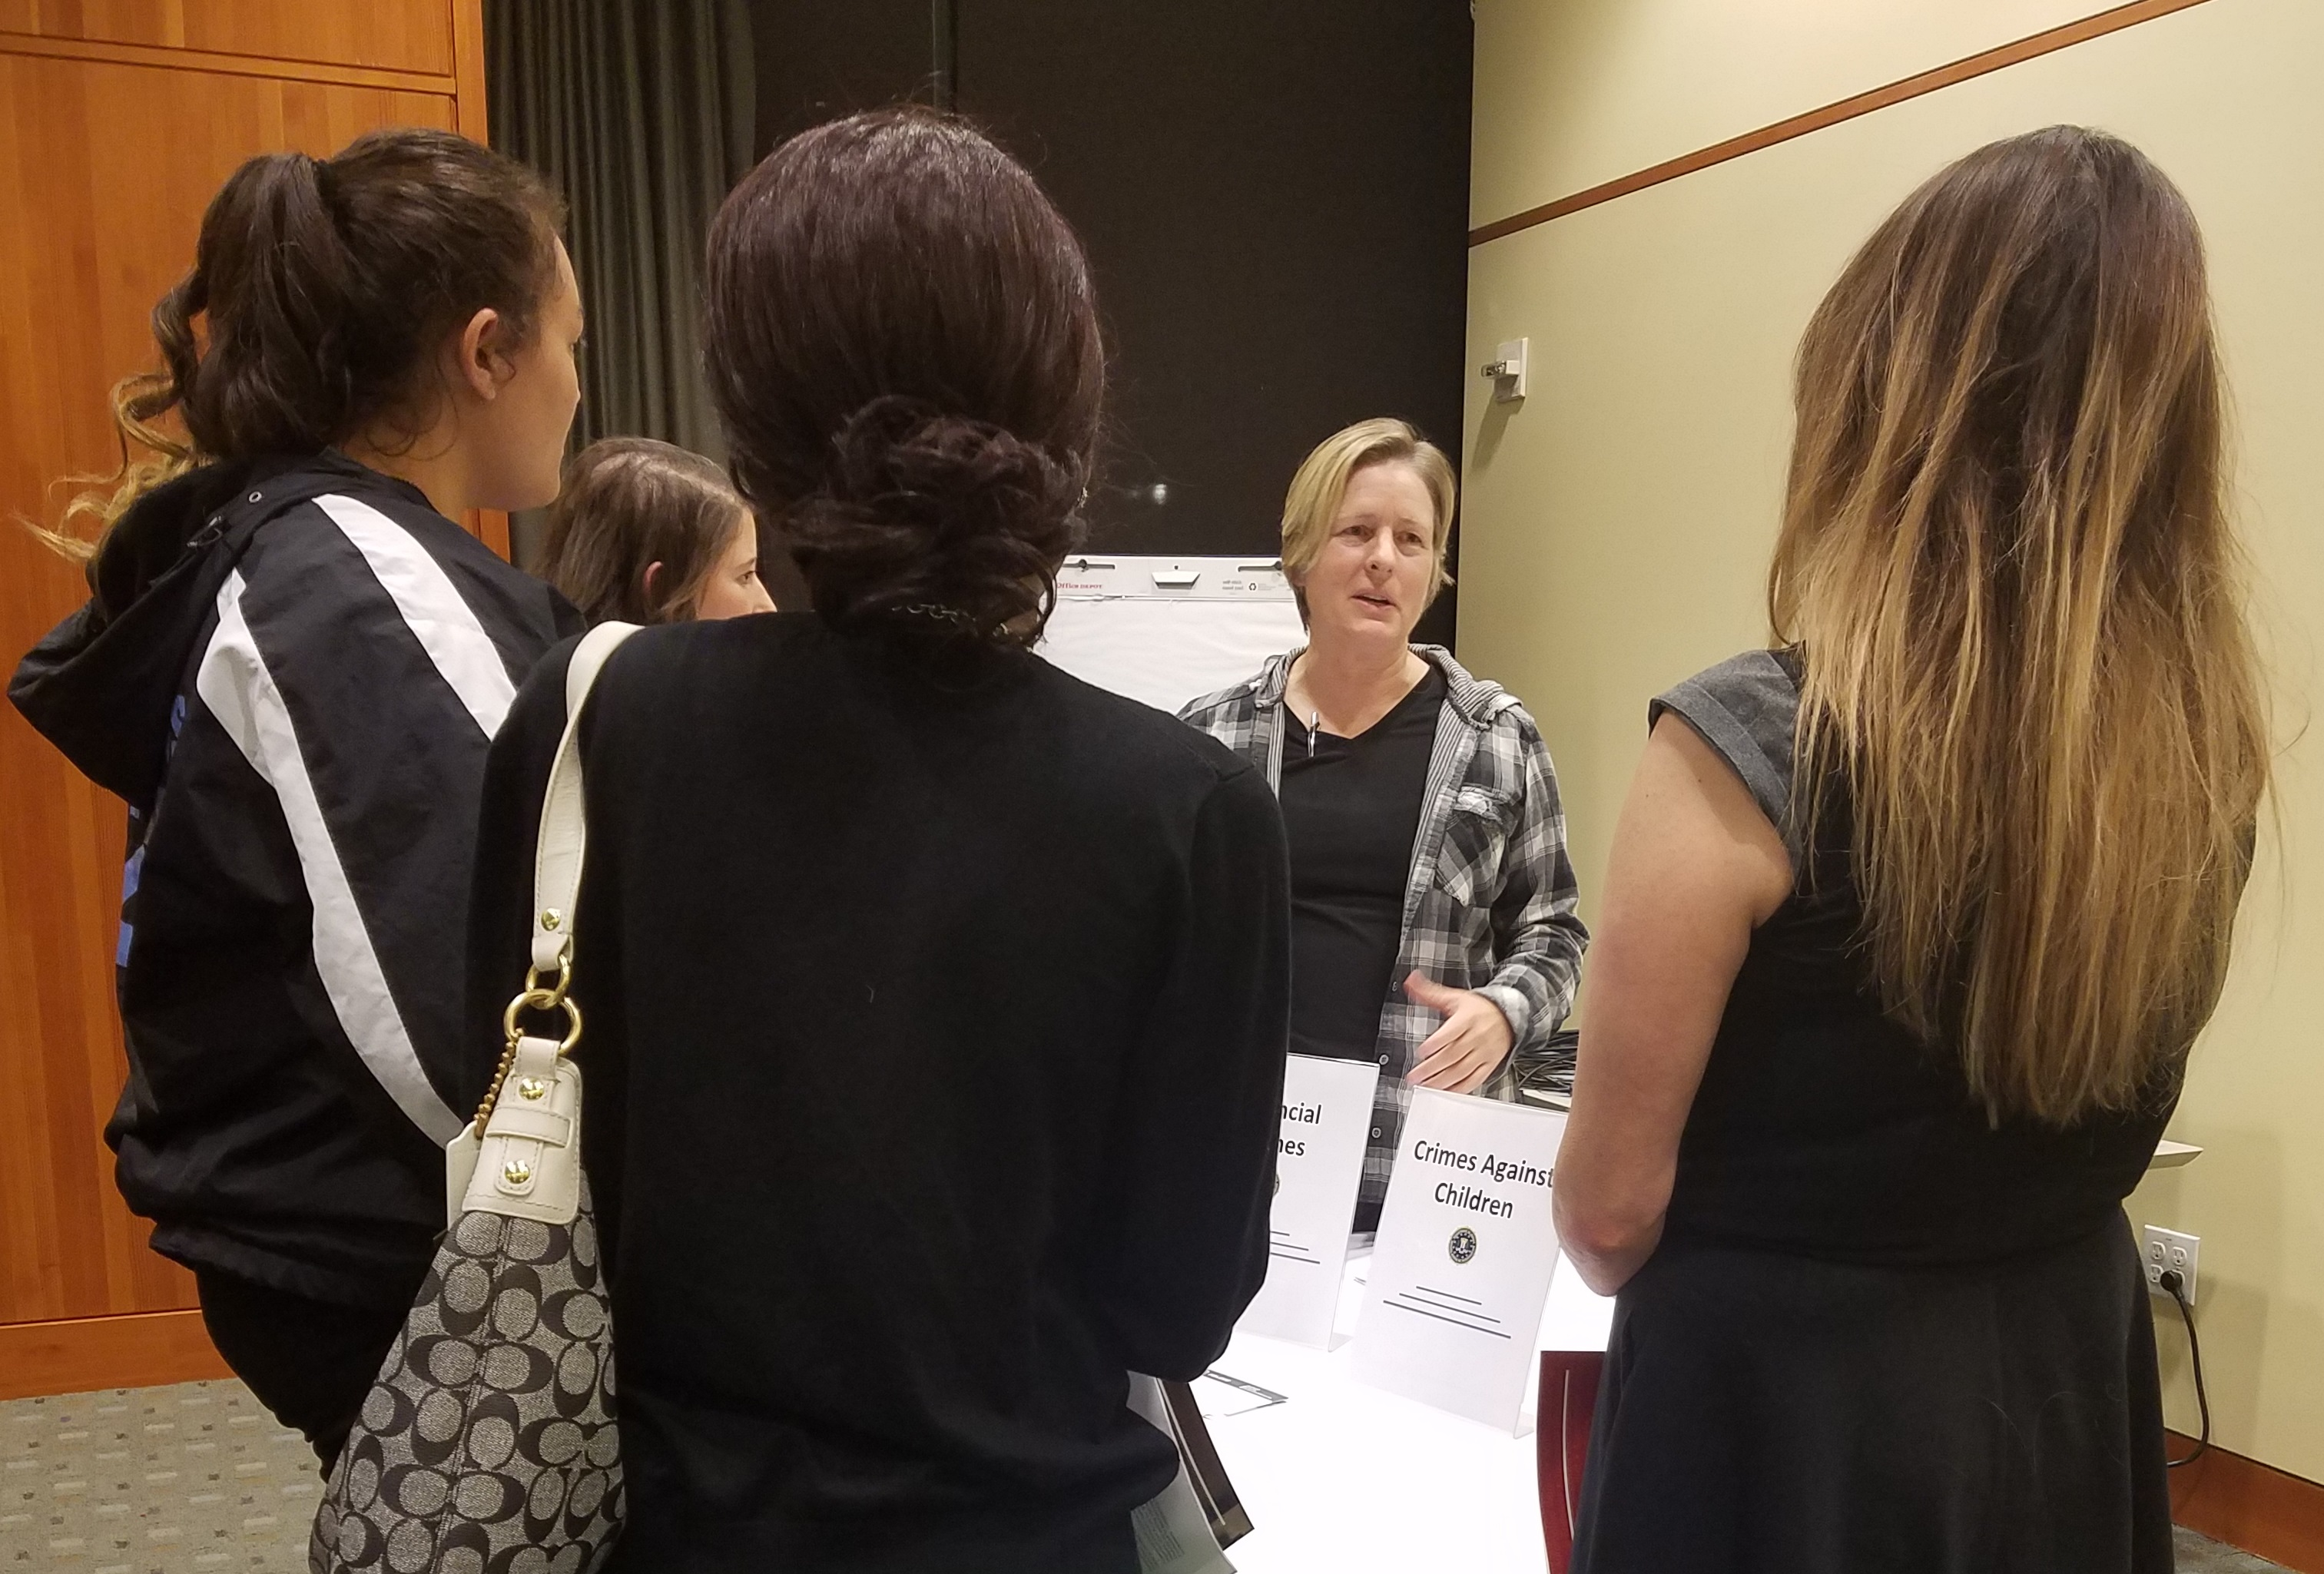 The FBI's Portland Division, in partnership with ChickTech, is working to recruit women with backgrounds in science, engineering, math and computers. In late October, more than 75 women came together to learn about life in the FBI, the career options available and the benefits to public service.